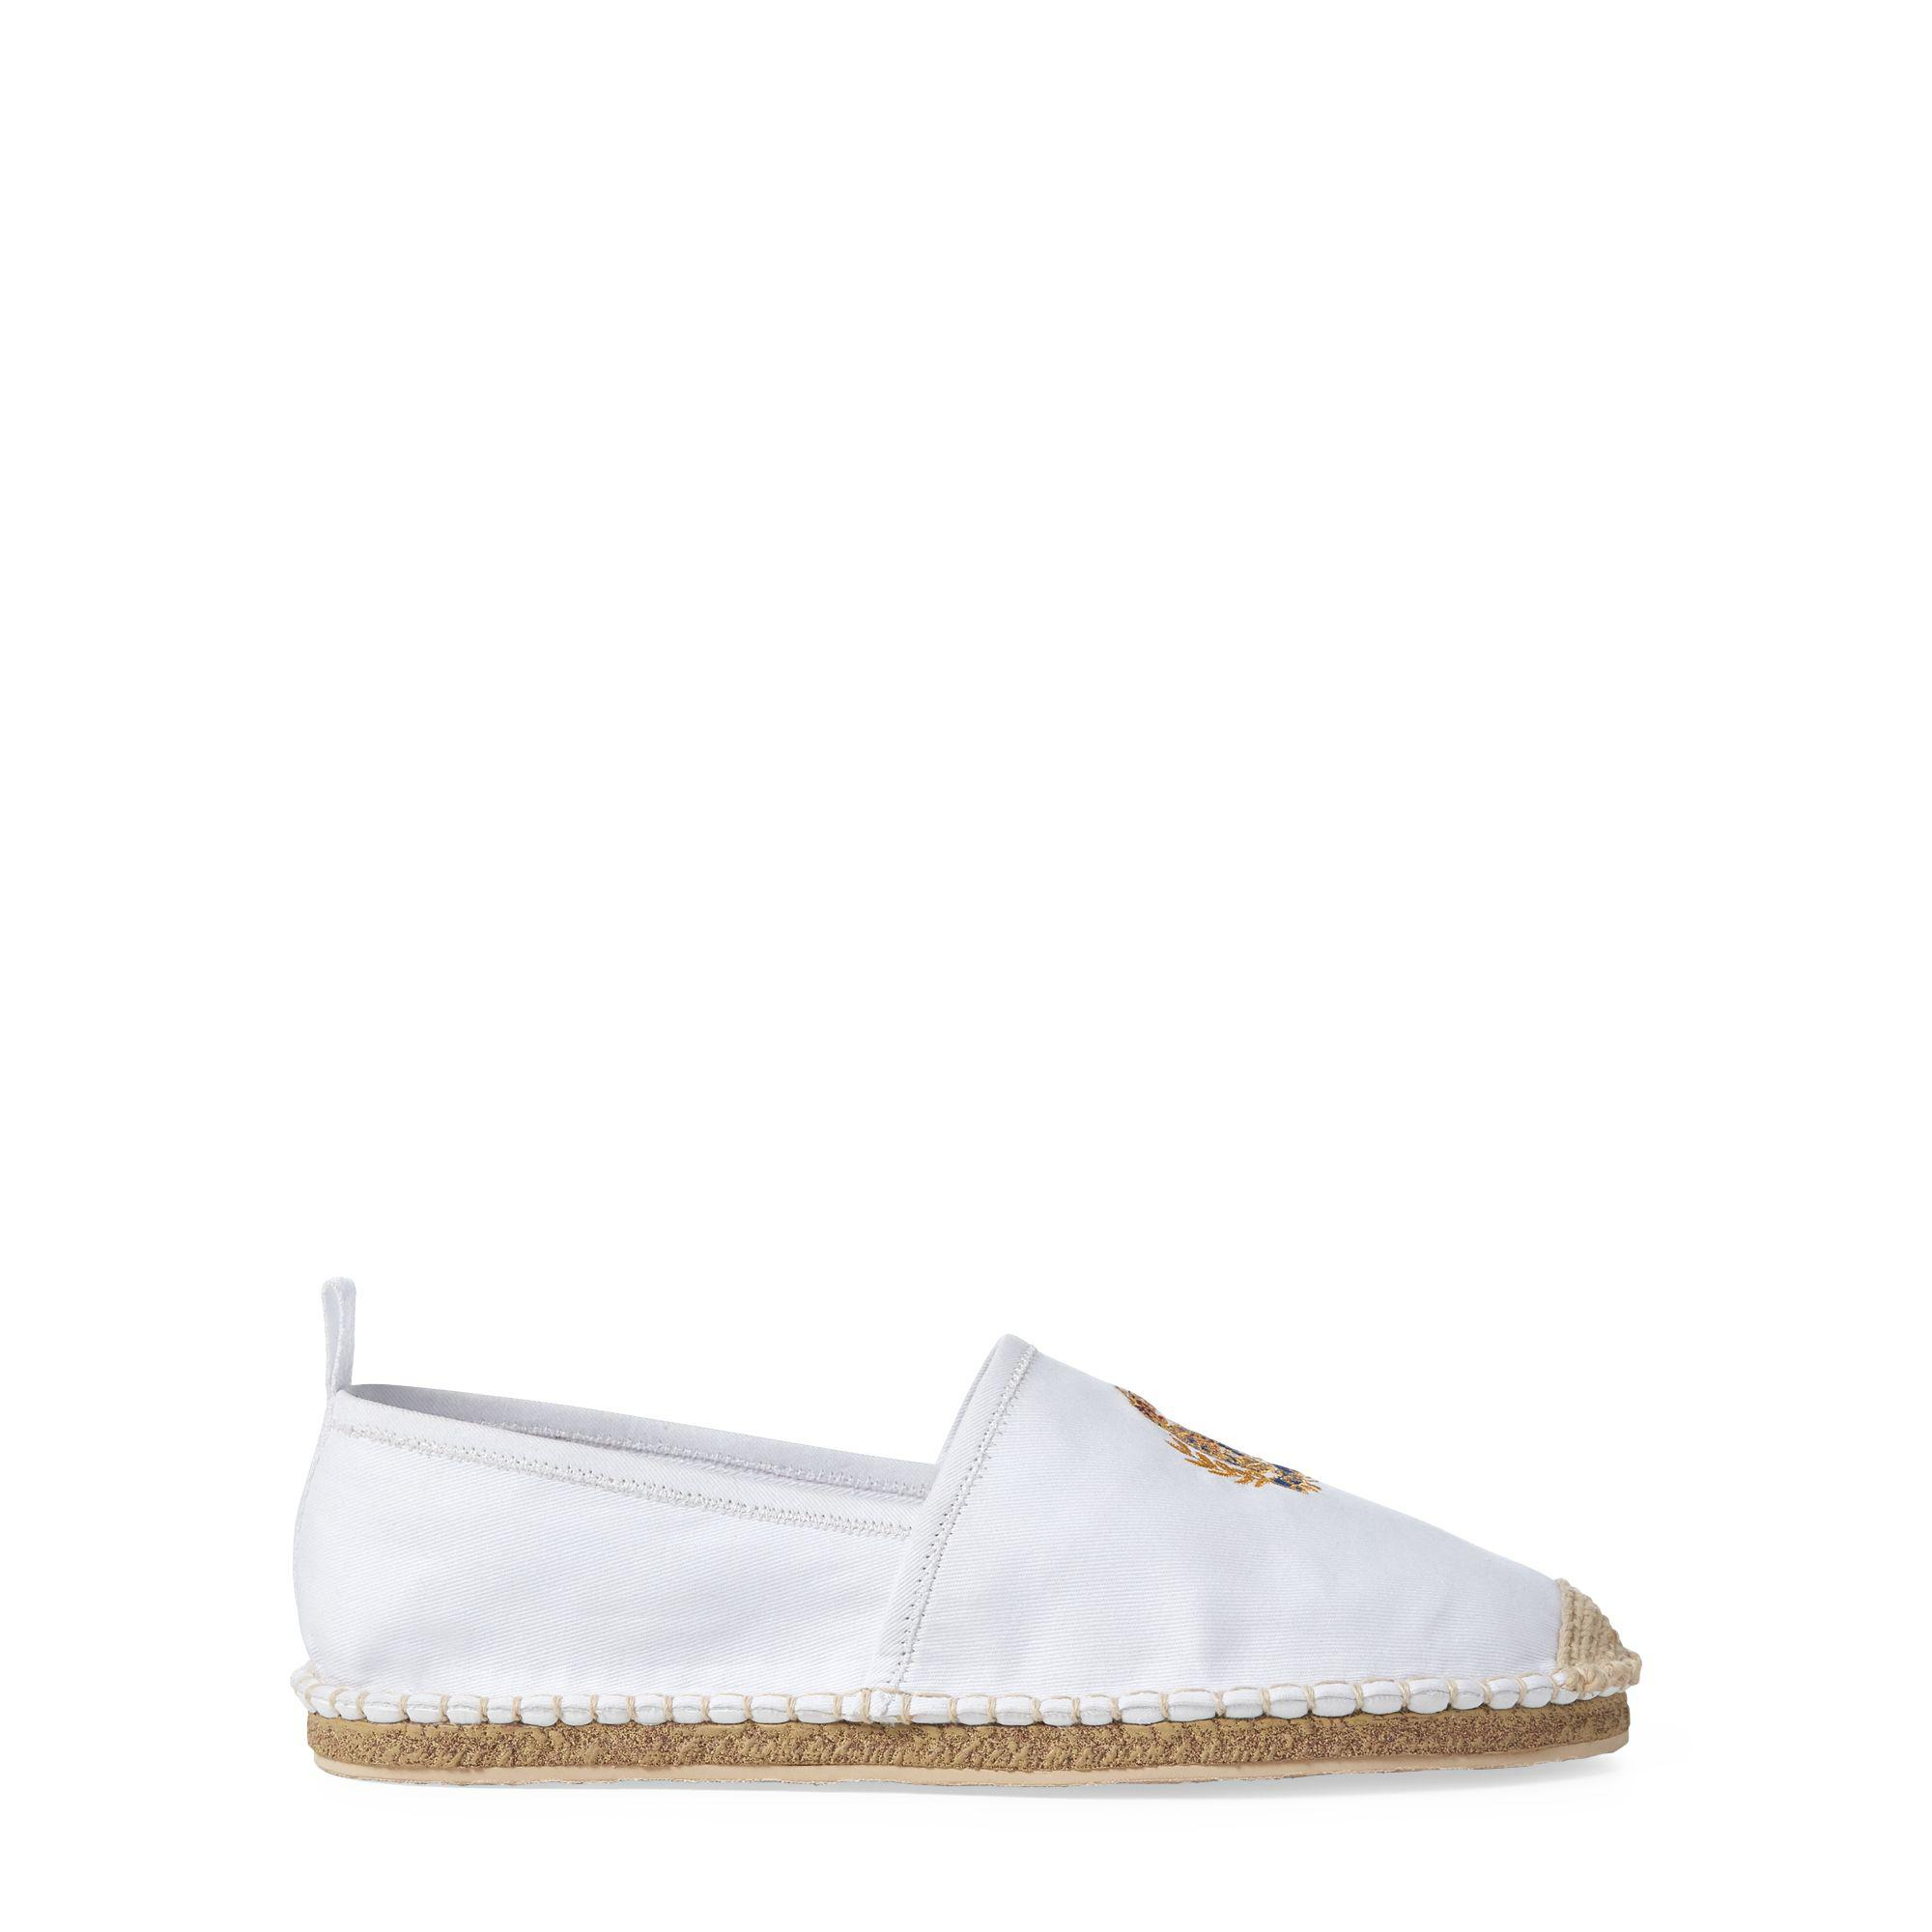 Lyst - Polo Ralph Lauren Barron Crested Espadrille in White for Men ... afb921fa4526